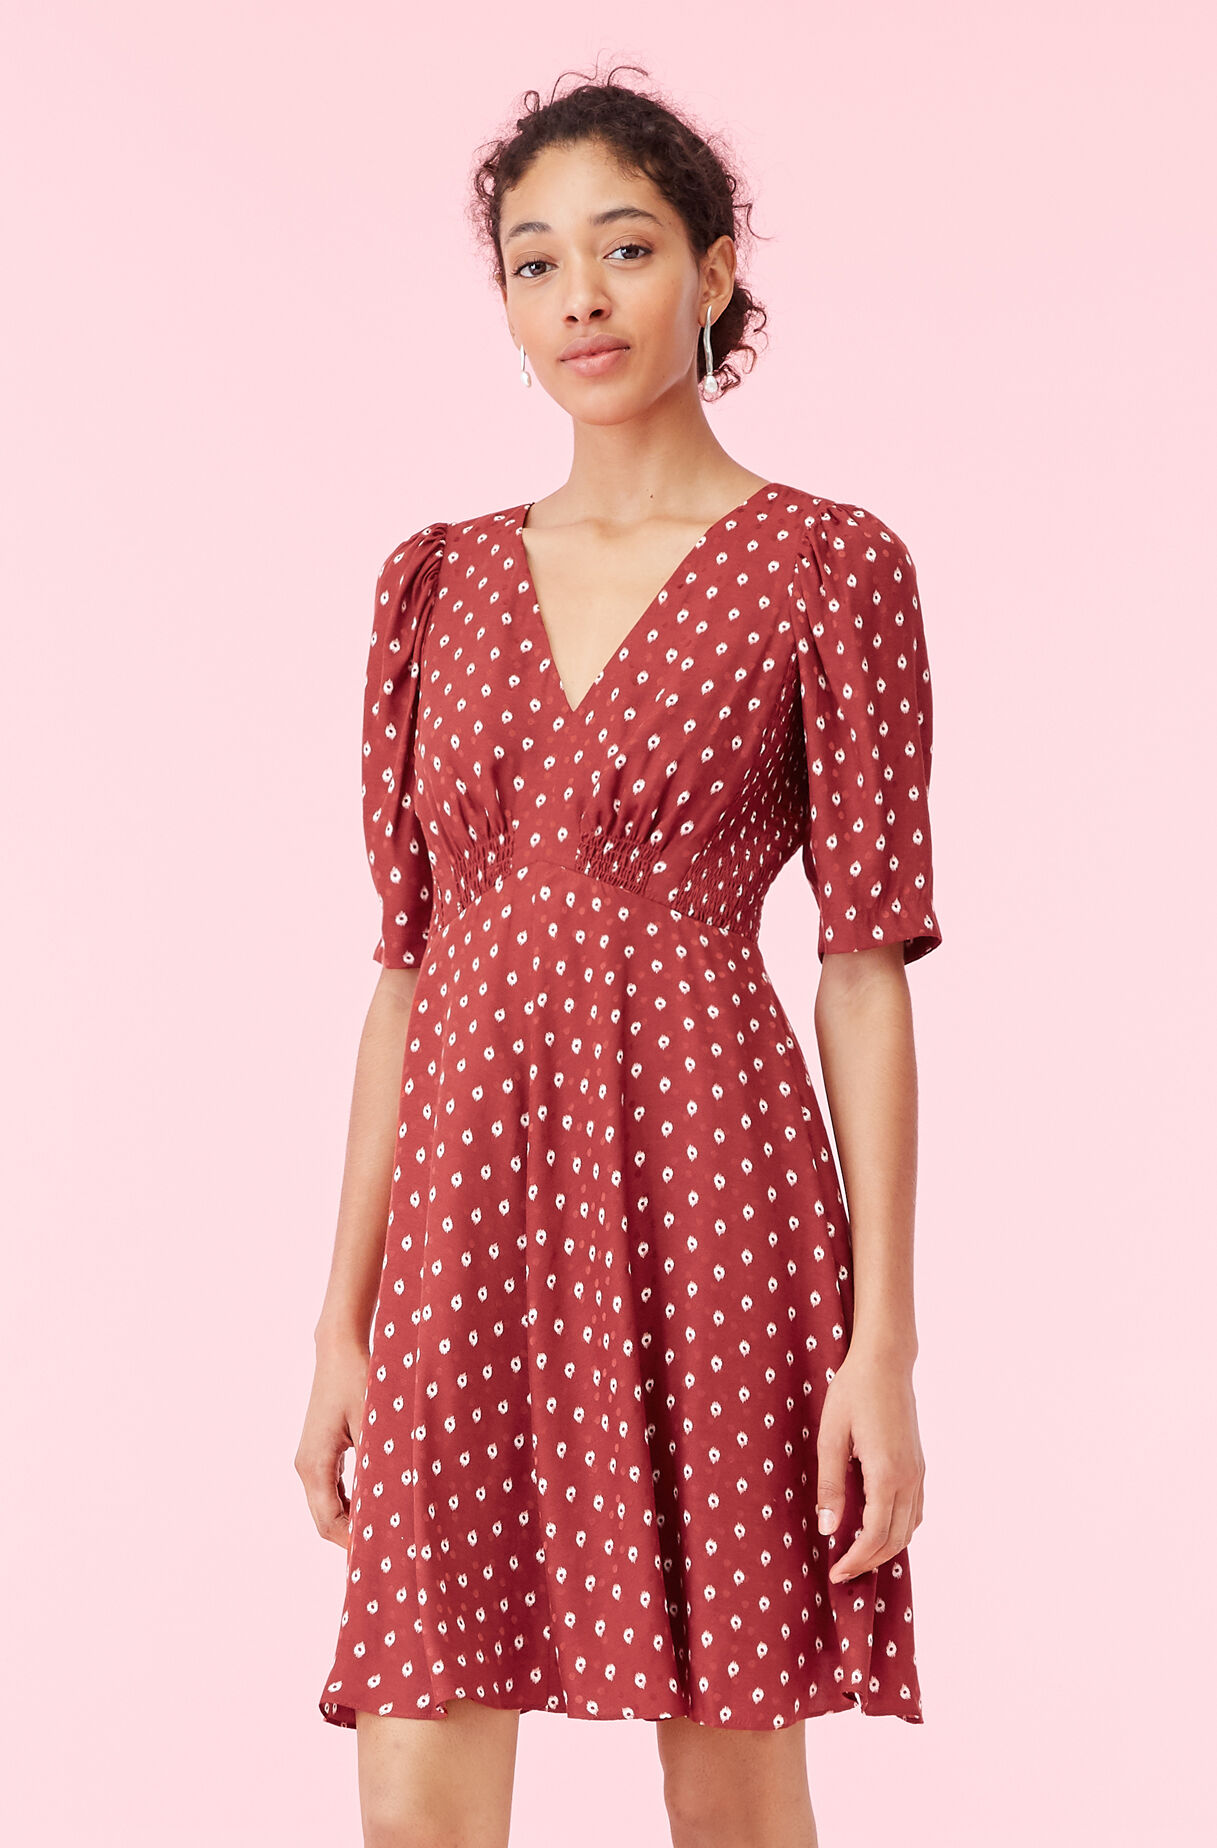 Sunrise Dot Jacquard V-Neck Dress, , large